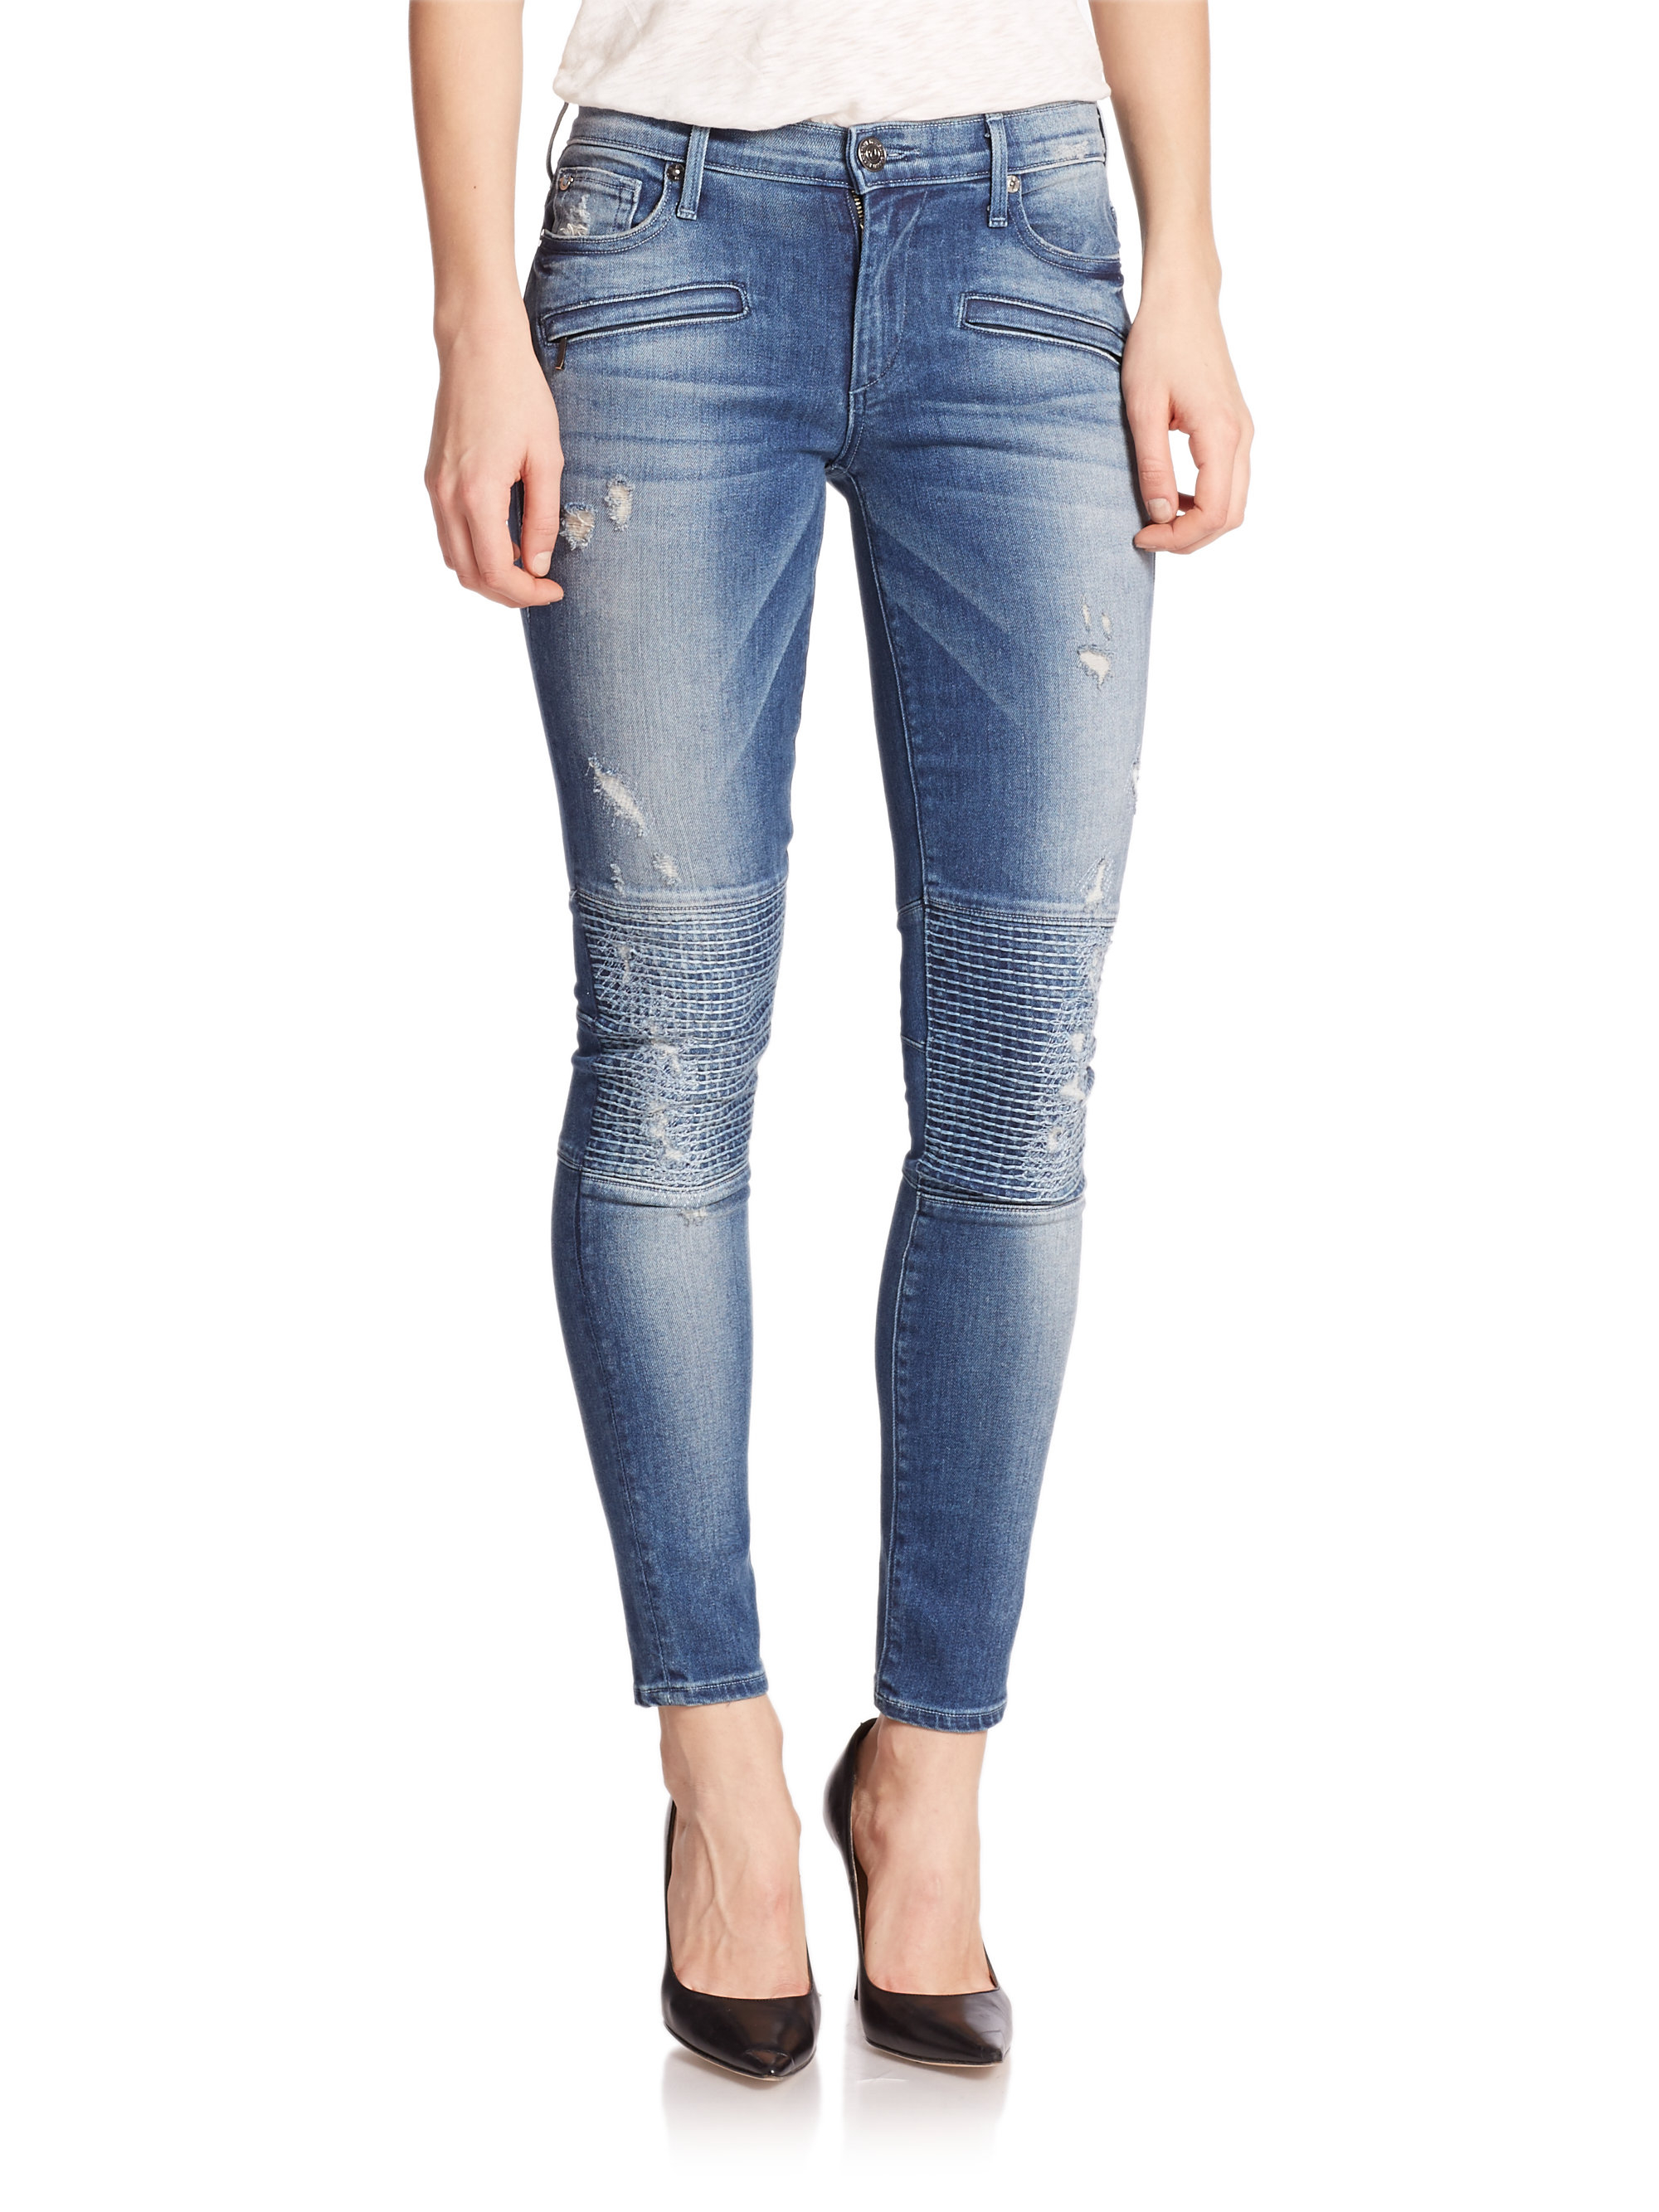 4616f89f8 True Religion Halle Distressed Skinny Moto Jeans in Blue - Lyst